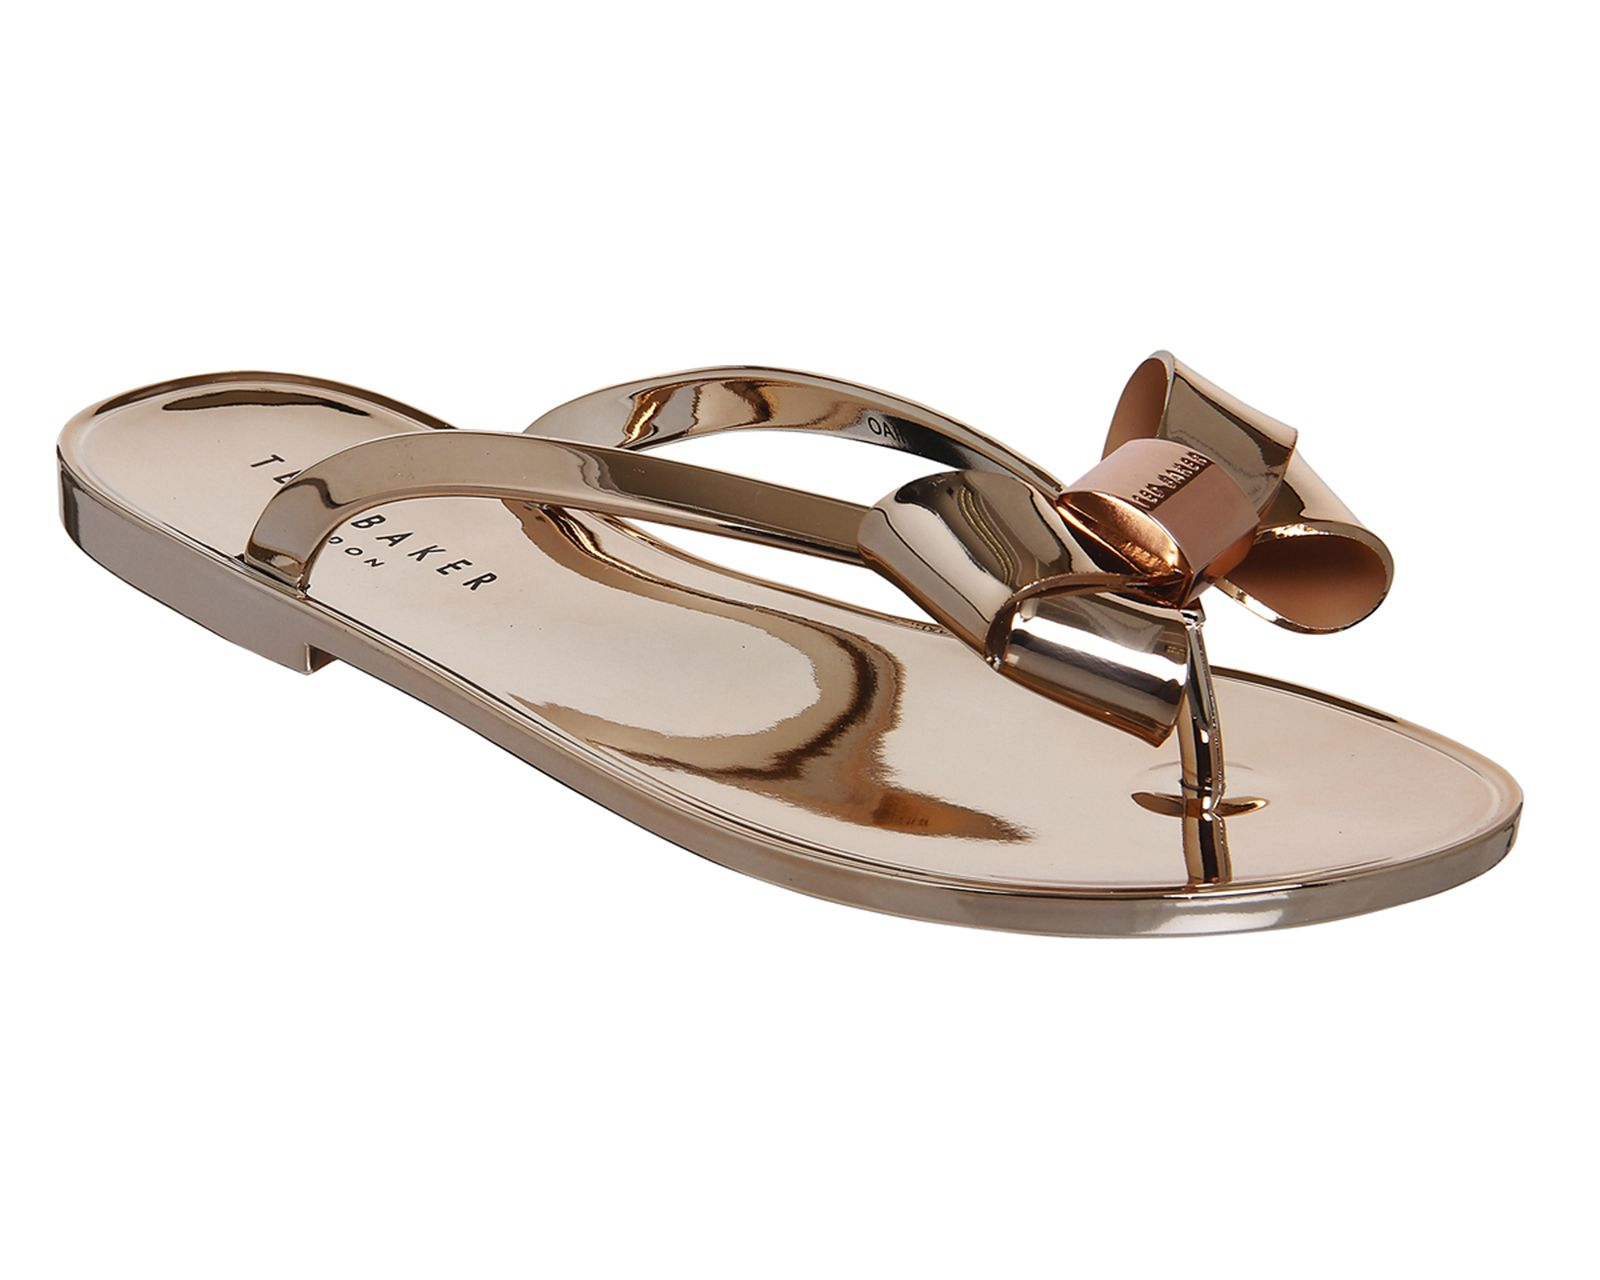 67b472611 Buy Rose Gold Exclusive Ted Baker Ettiea Flip Flops from OFFICE.co ...